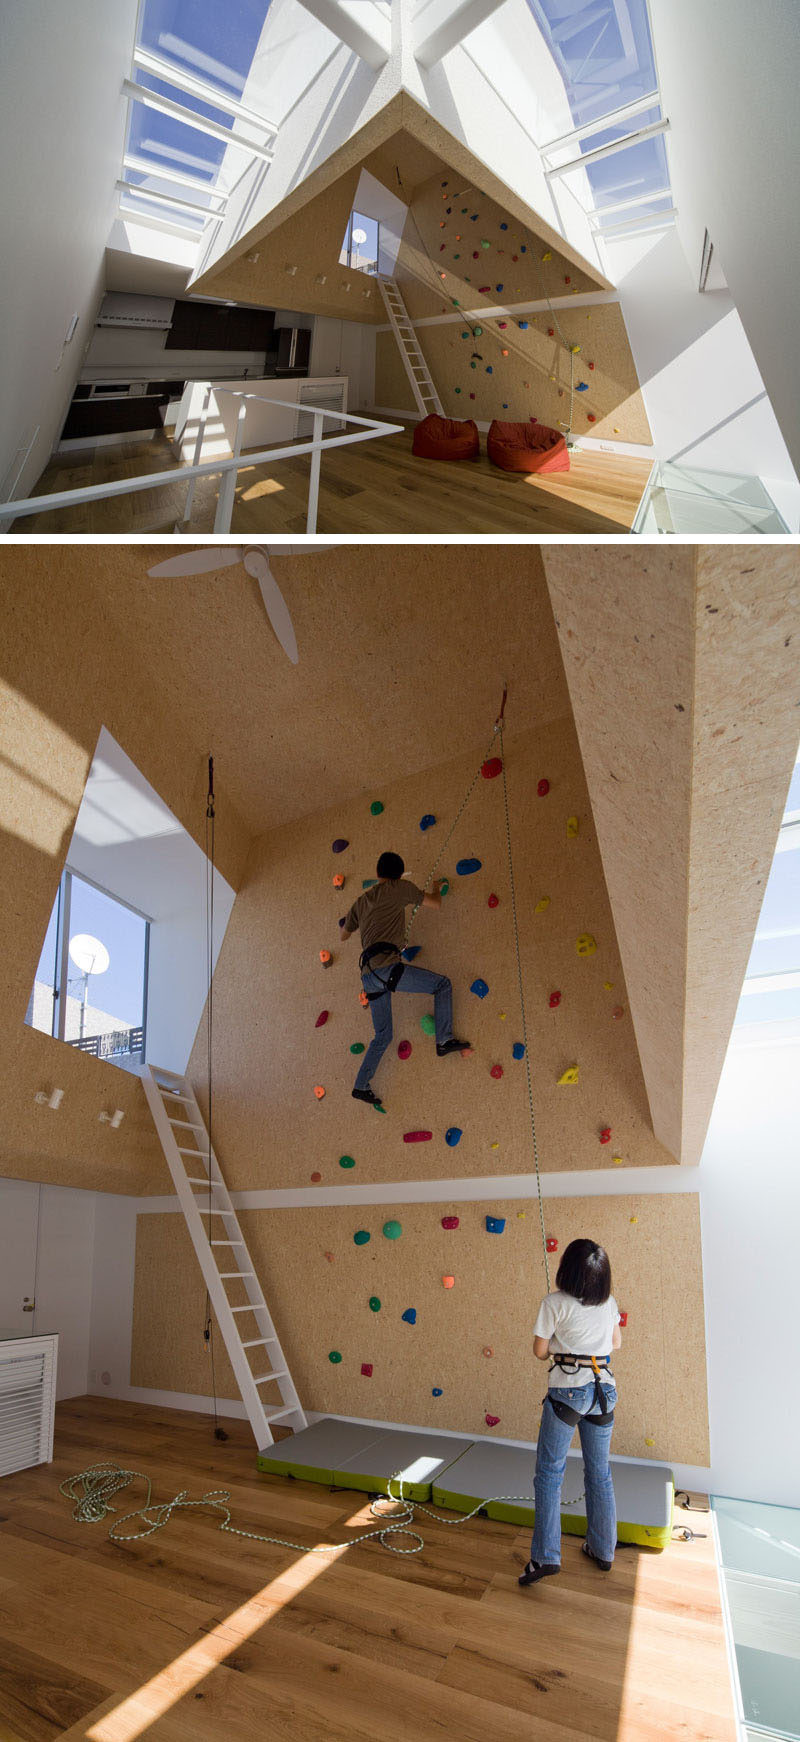 10 Modern Houses With Rock Climbing Walls CONTEMPORIST